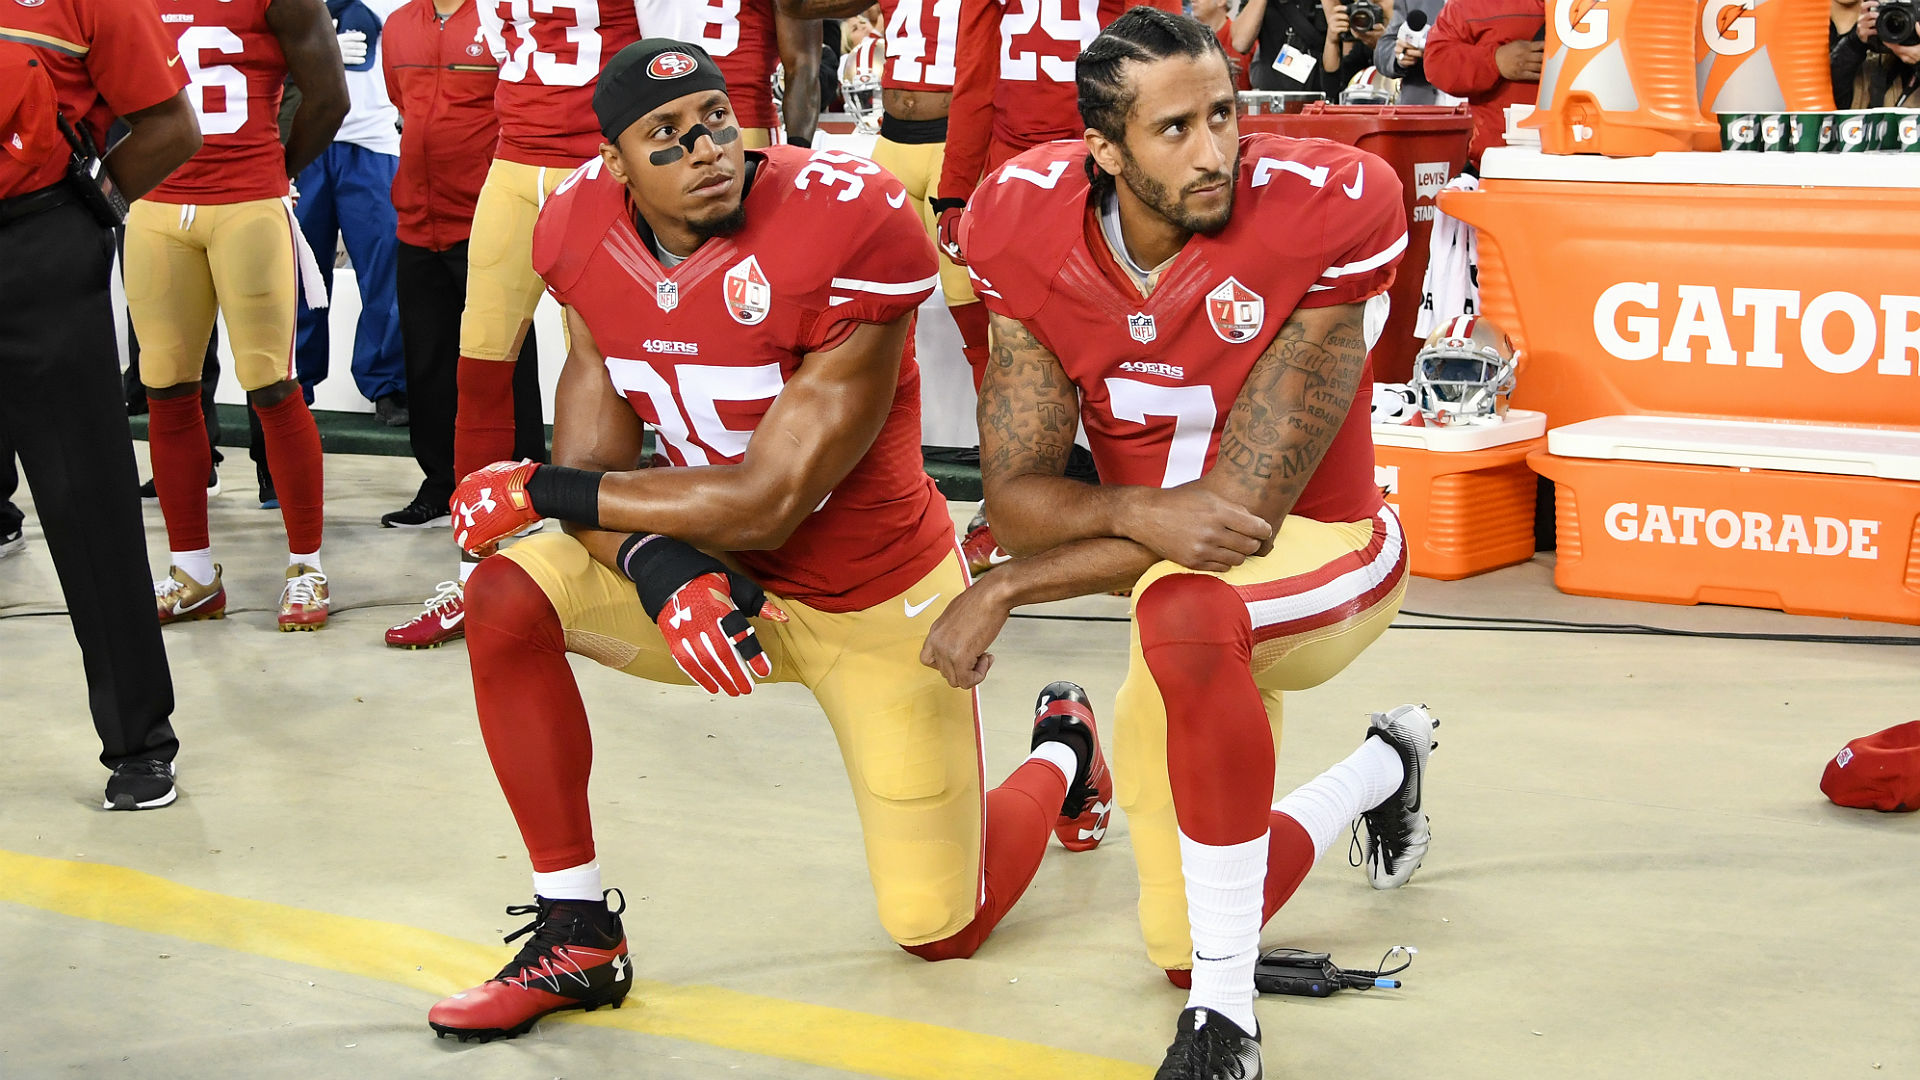 Colin Kaepernick, Other NFL Players Continue National Anthem Protests